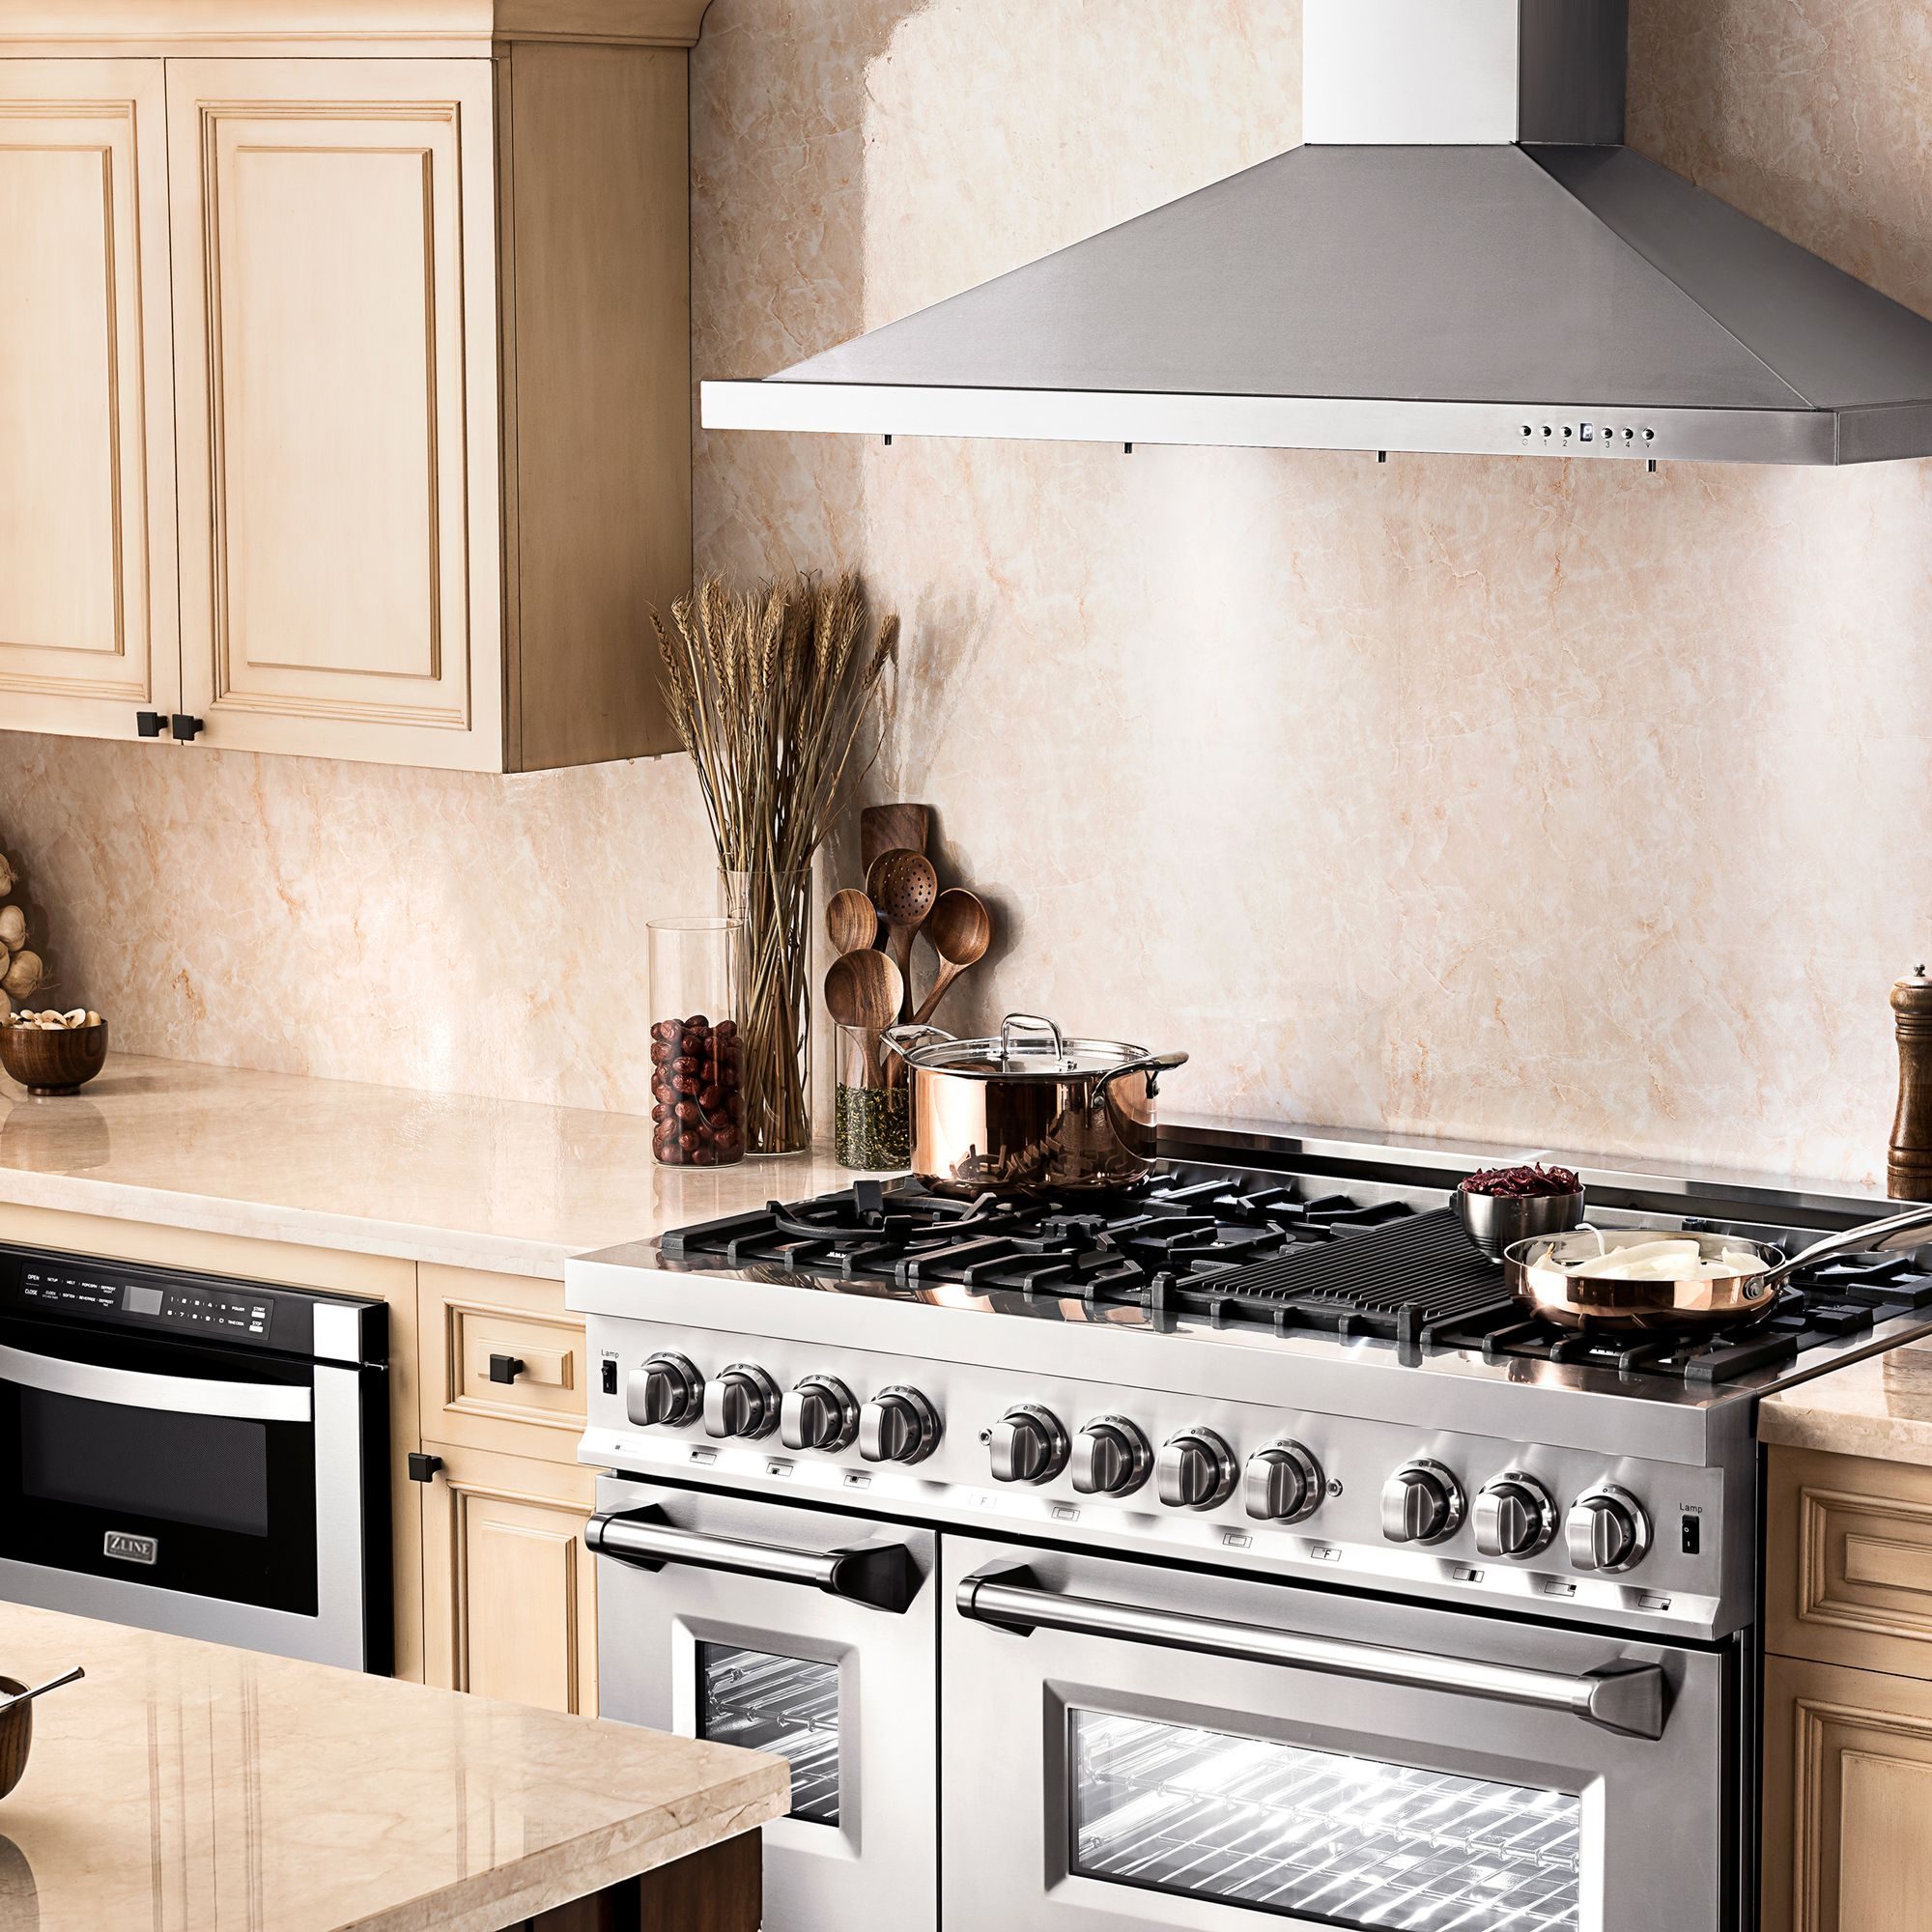 Zline 48 In Wall Mount Range Hood In Stainless Steel Kb 48 Range Hood Wall Mount Range Hood Kitchen Appliance Packages